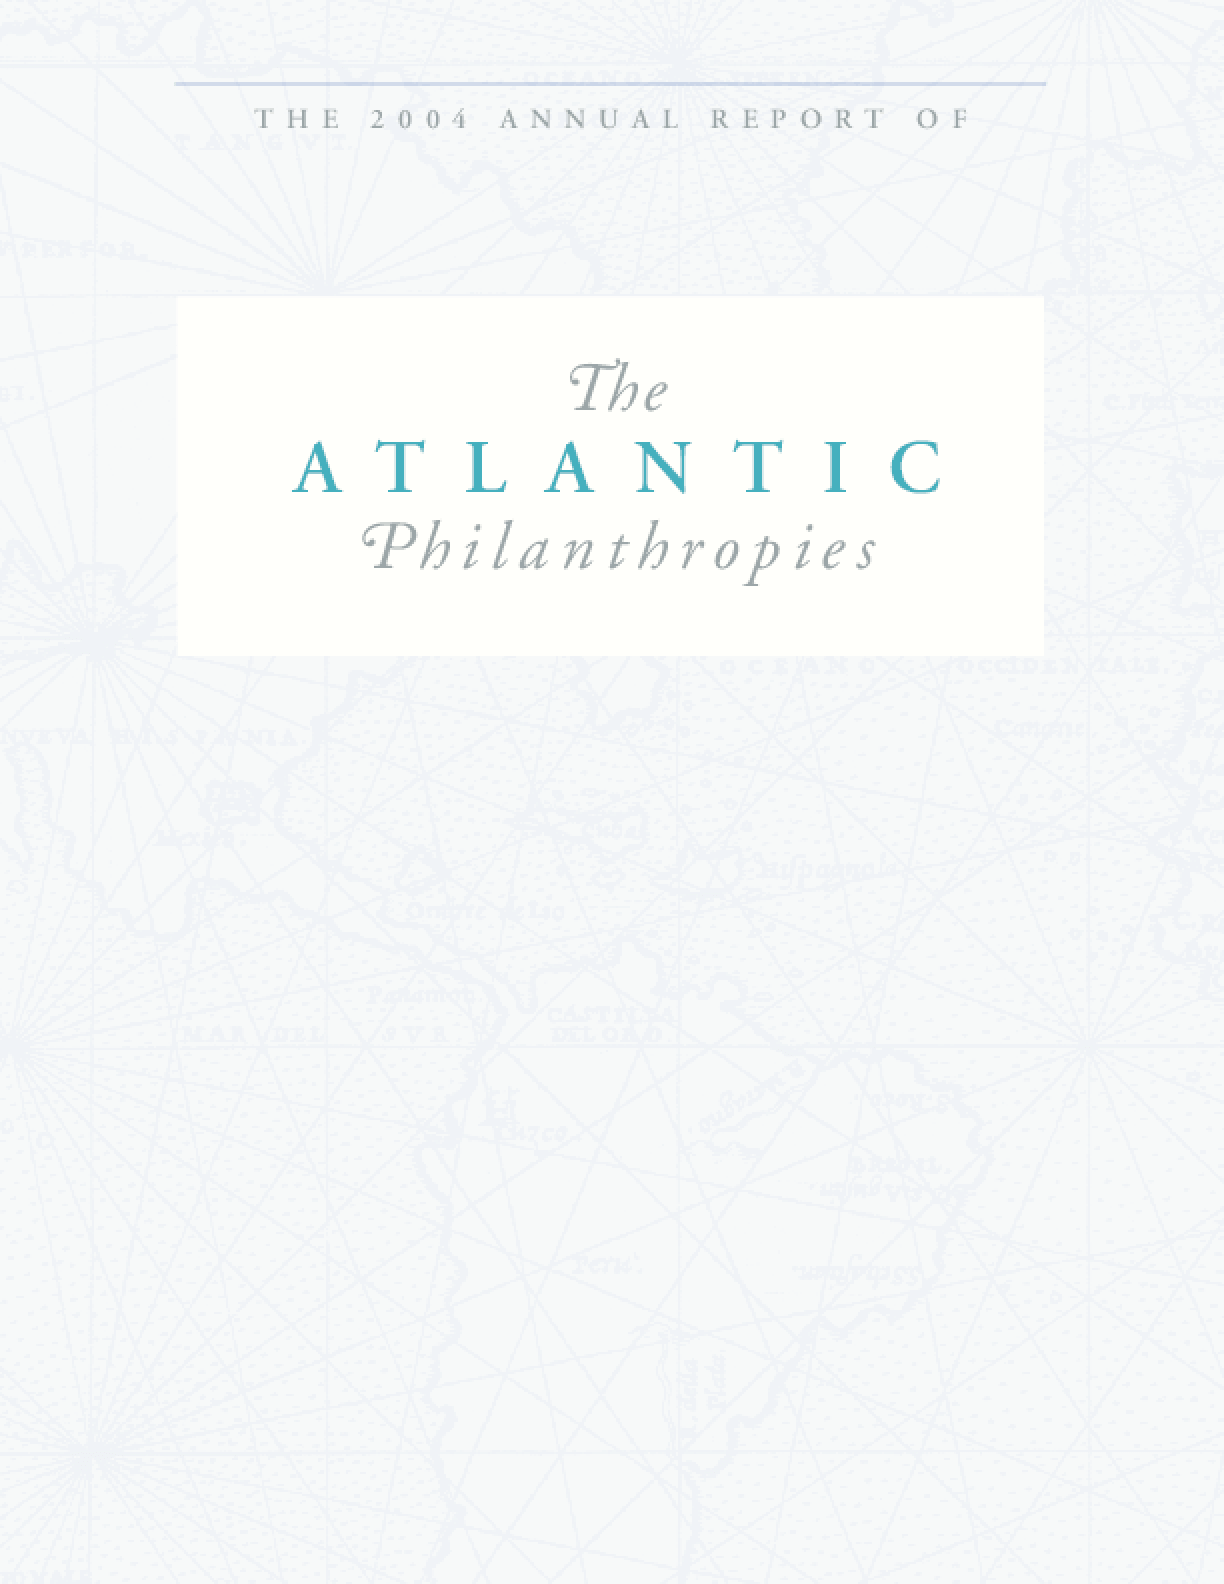 The 2004 Annual Report of The Atlantic Philanthropies